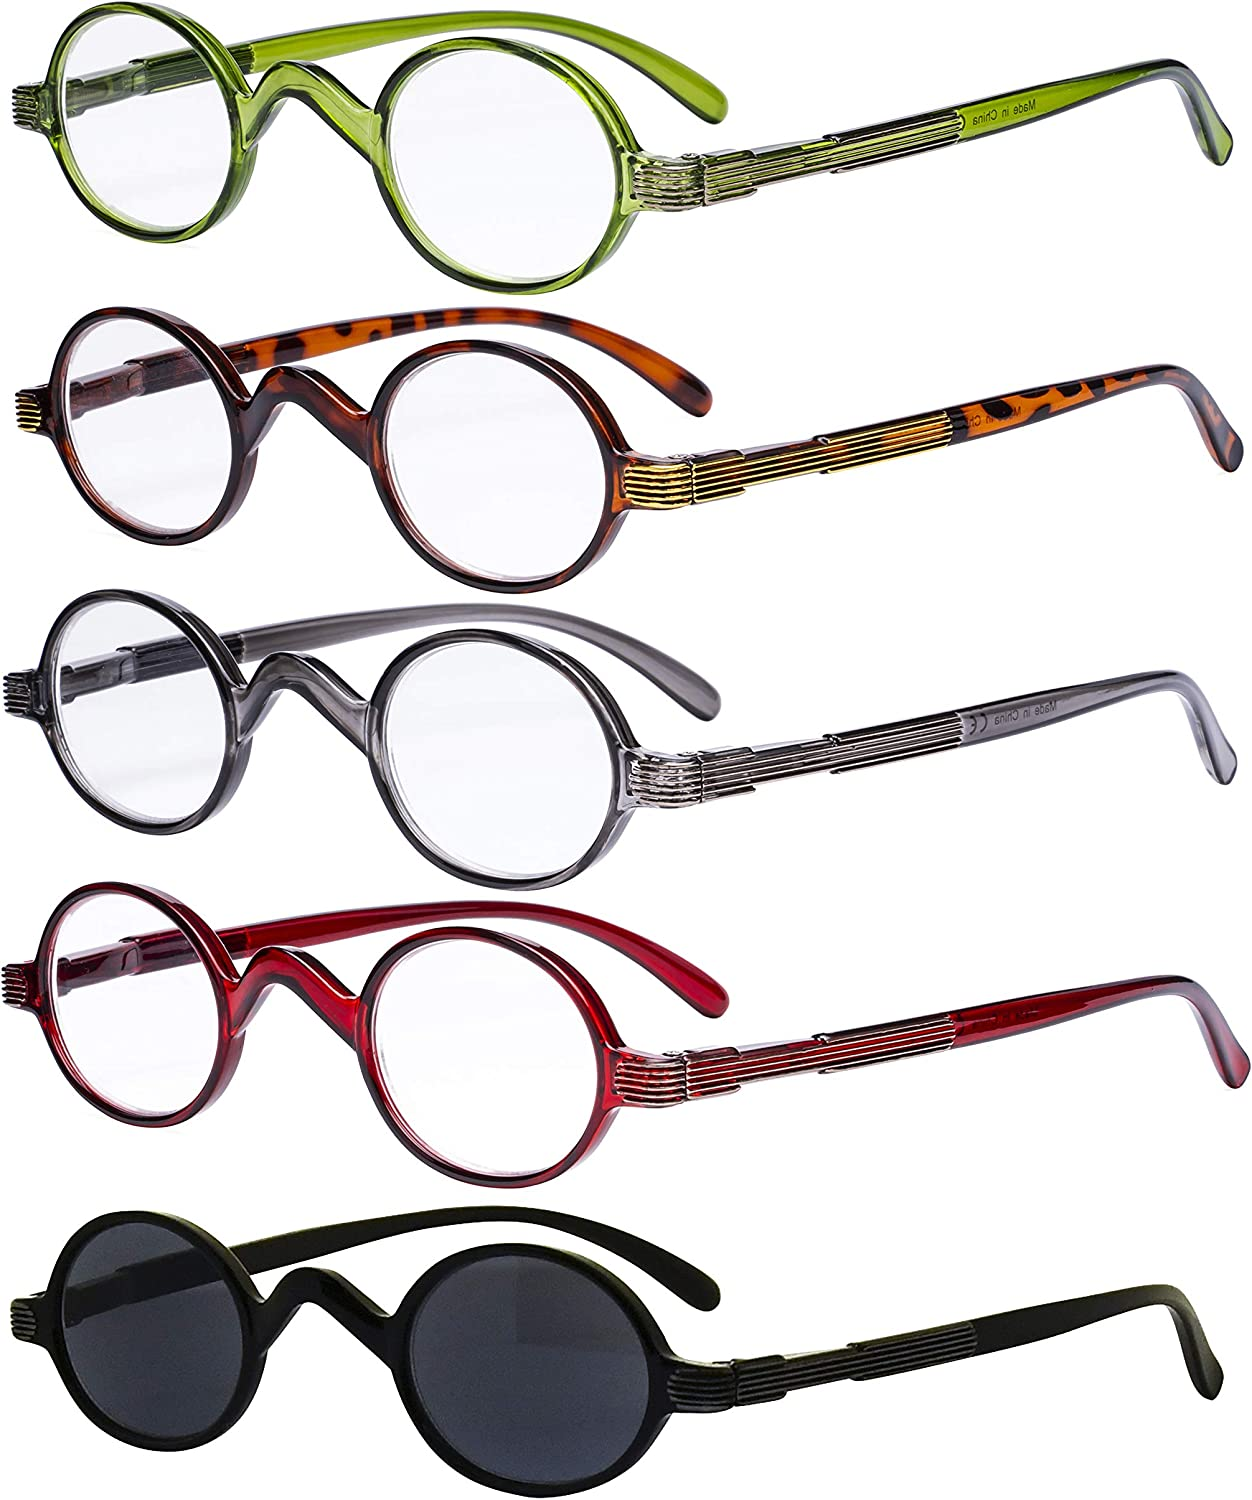 5-Pack Eyekepper Spring Temple Vintage Mini Ranking integrated 1st place Round Max 54% OFF Small Rea Oval